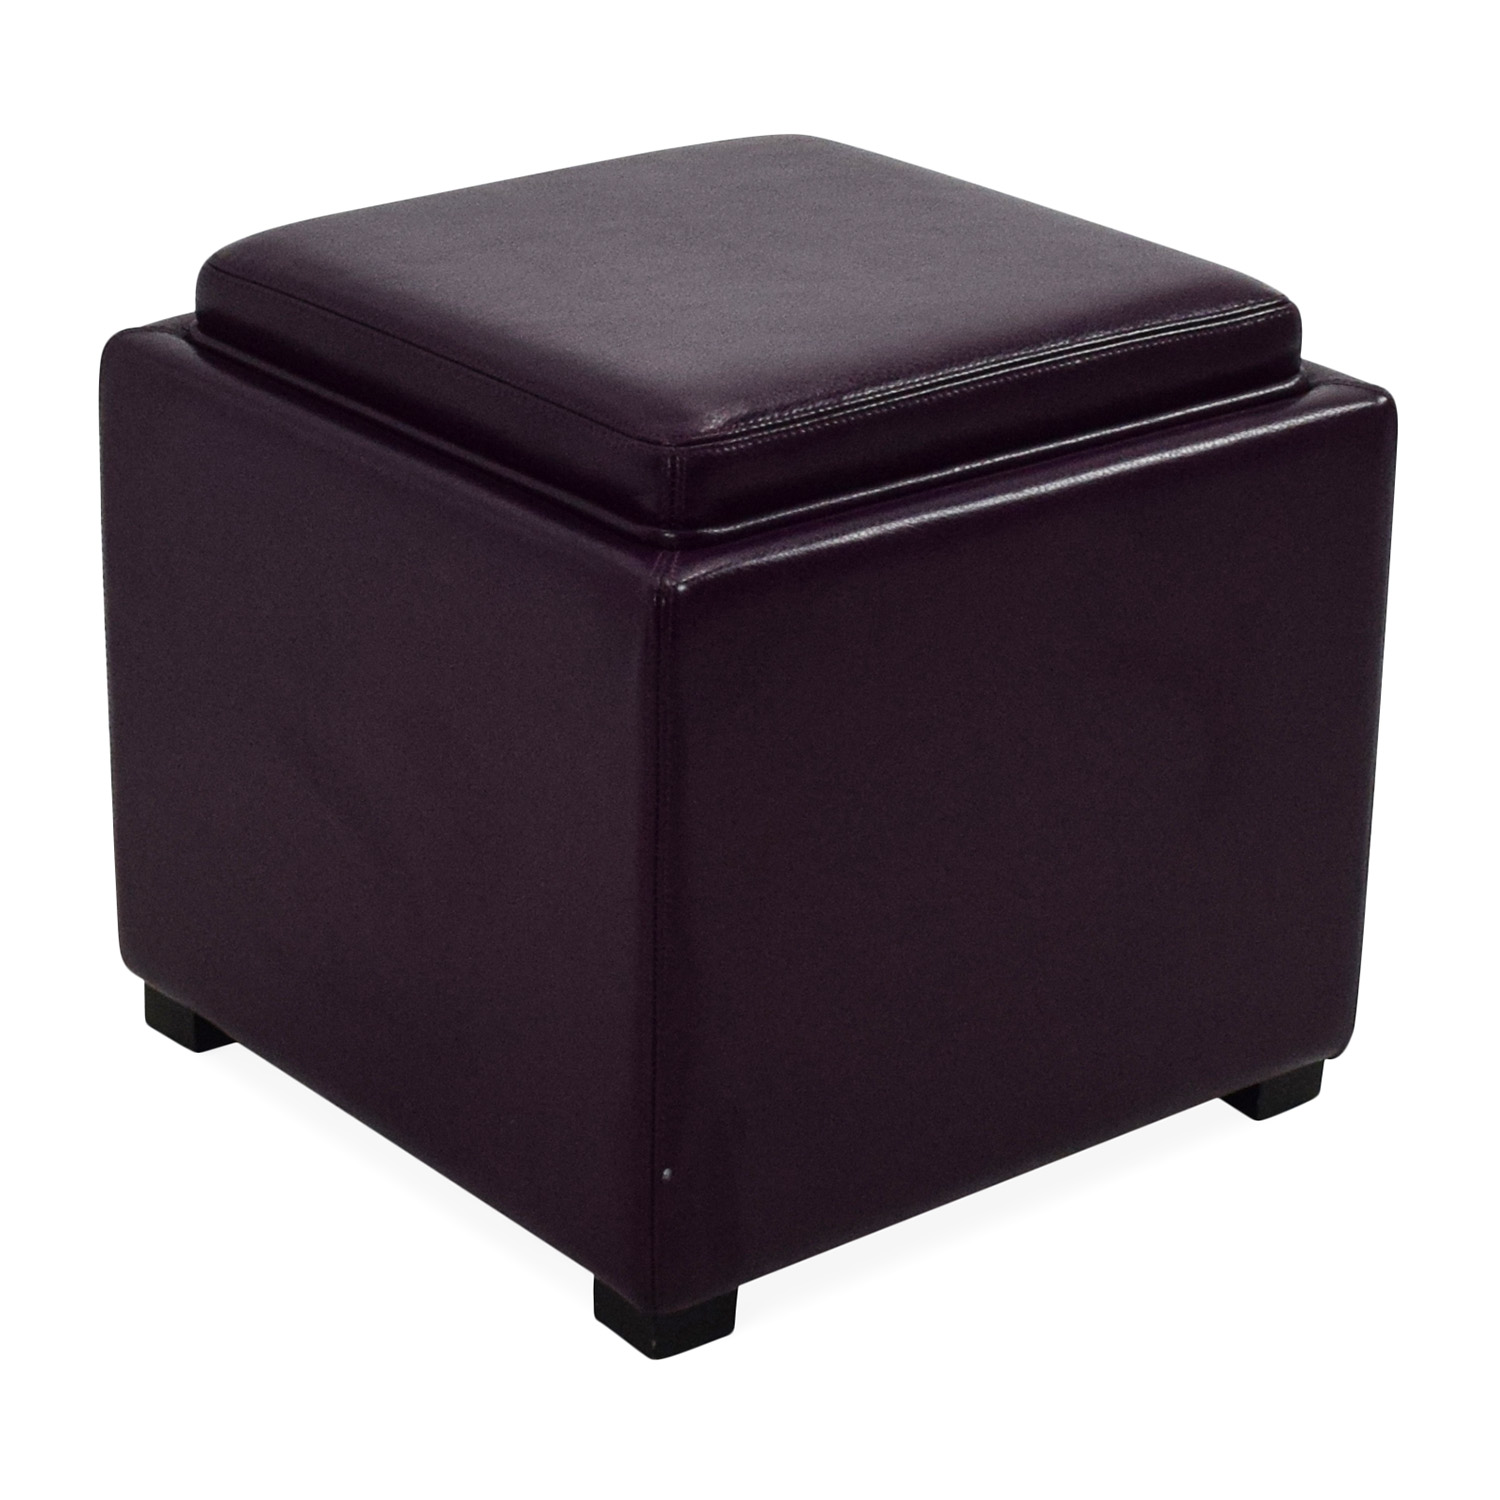 73 off crate and barrel crate barrel leather storage ottoman storage. Black Bedroom Furniture Sets. Home Design Ideas